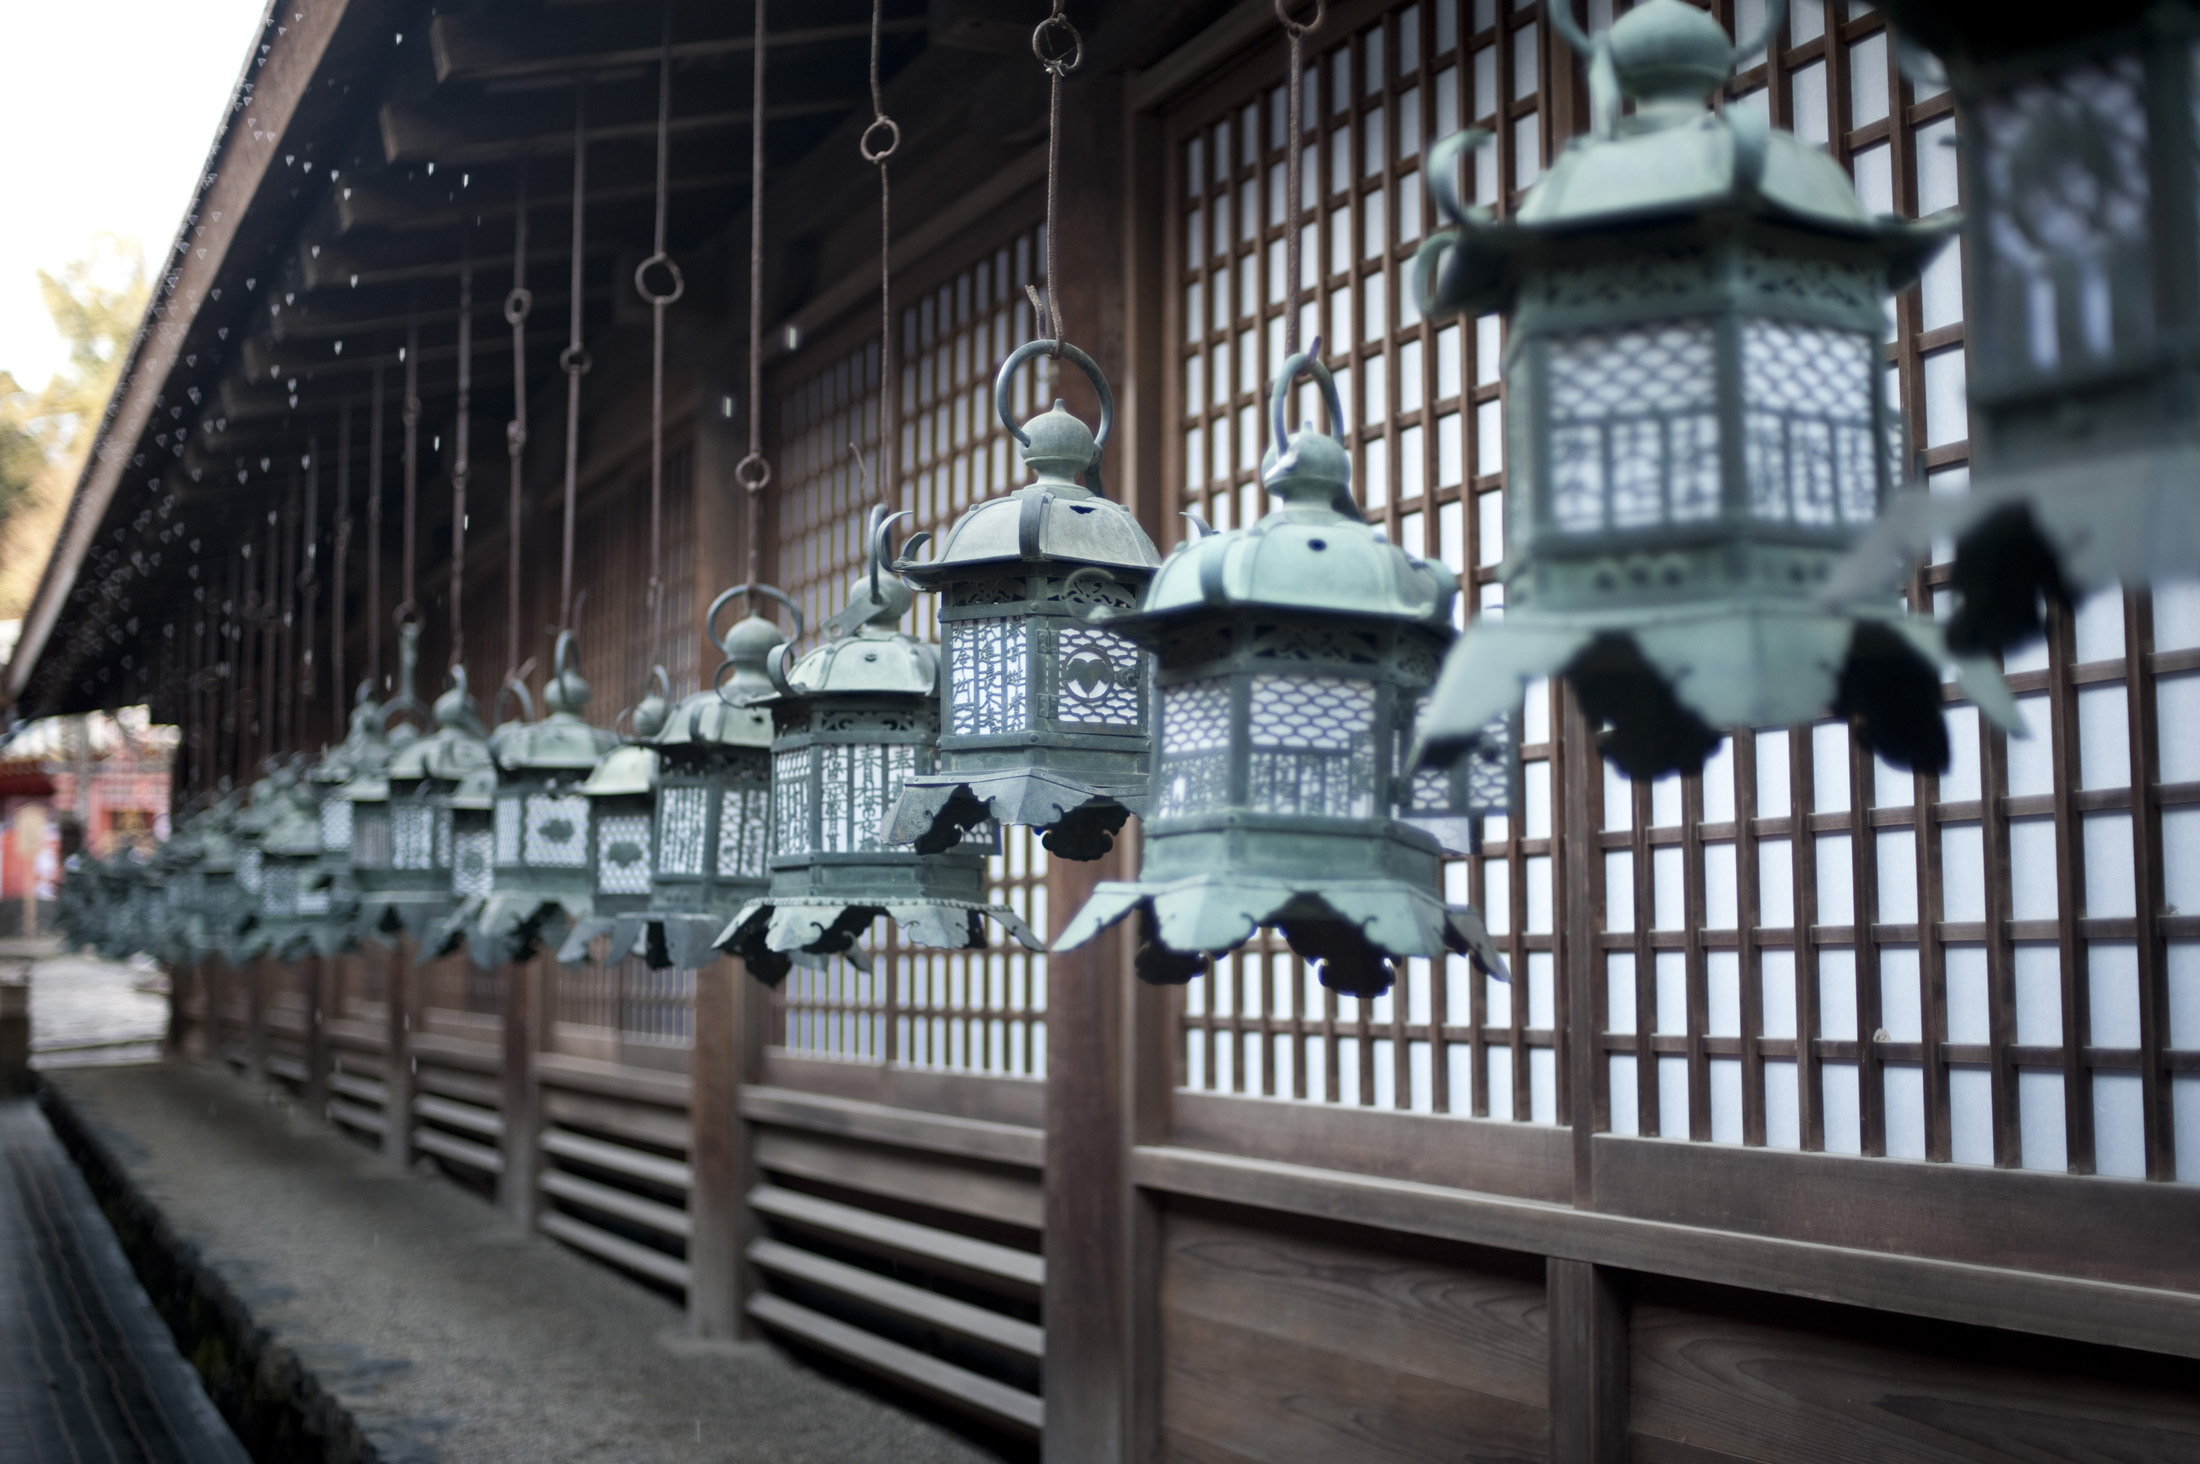 Kasuga Grand Shrine (Kasuga-taisha) a Shinto shrine in Nara, Japan, lines of brass lanterns or kondo-doro